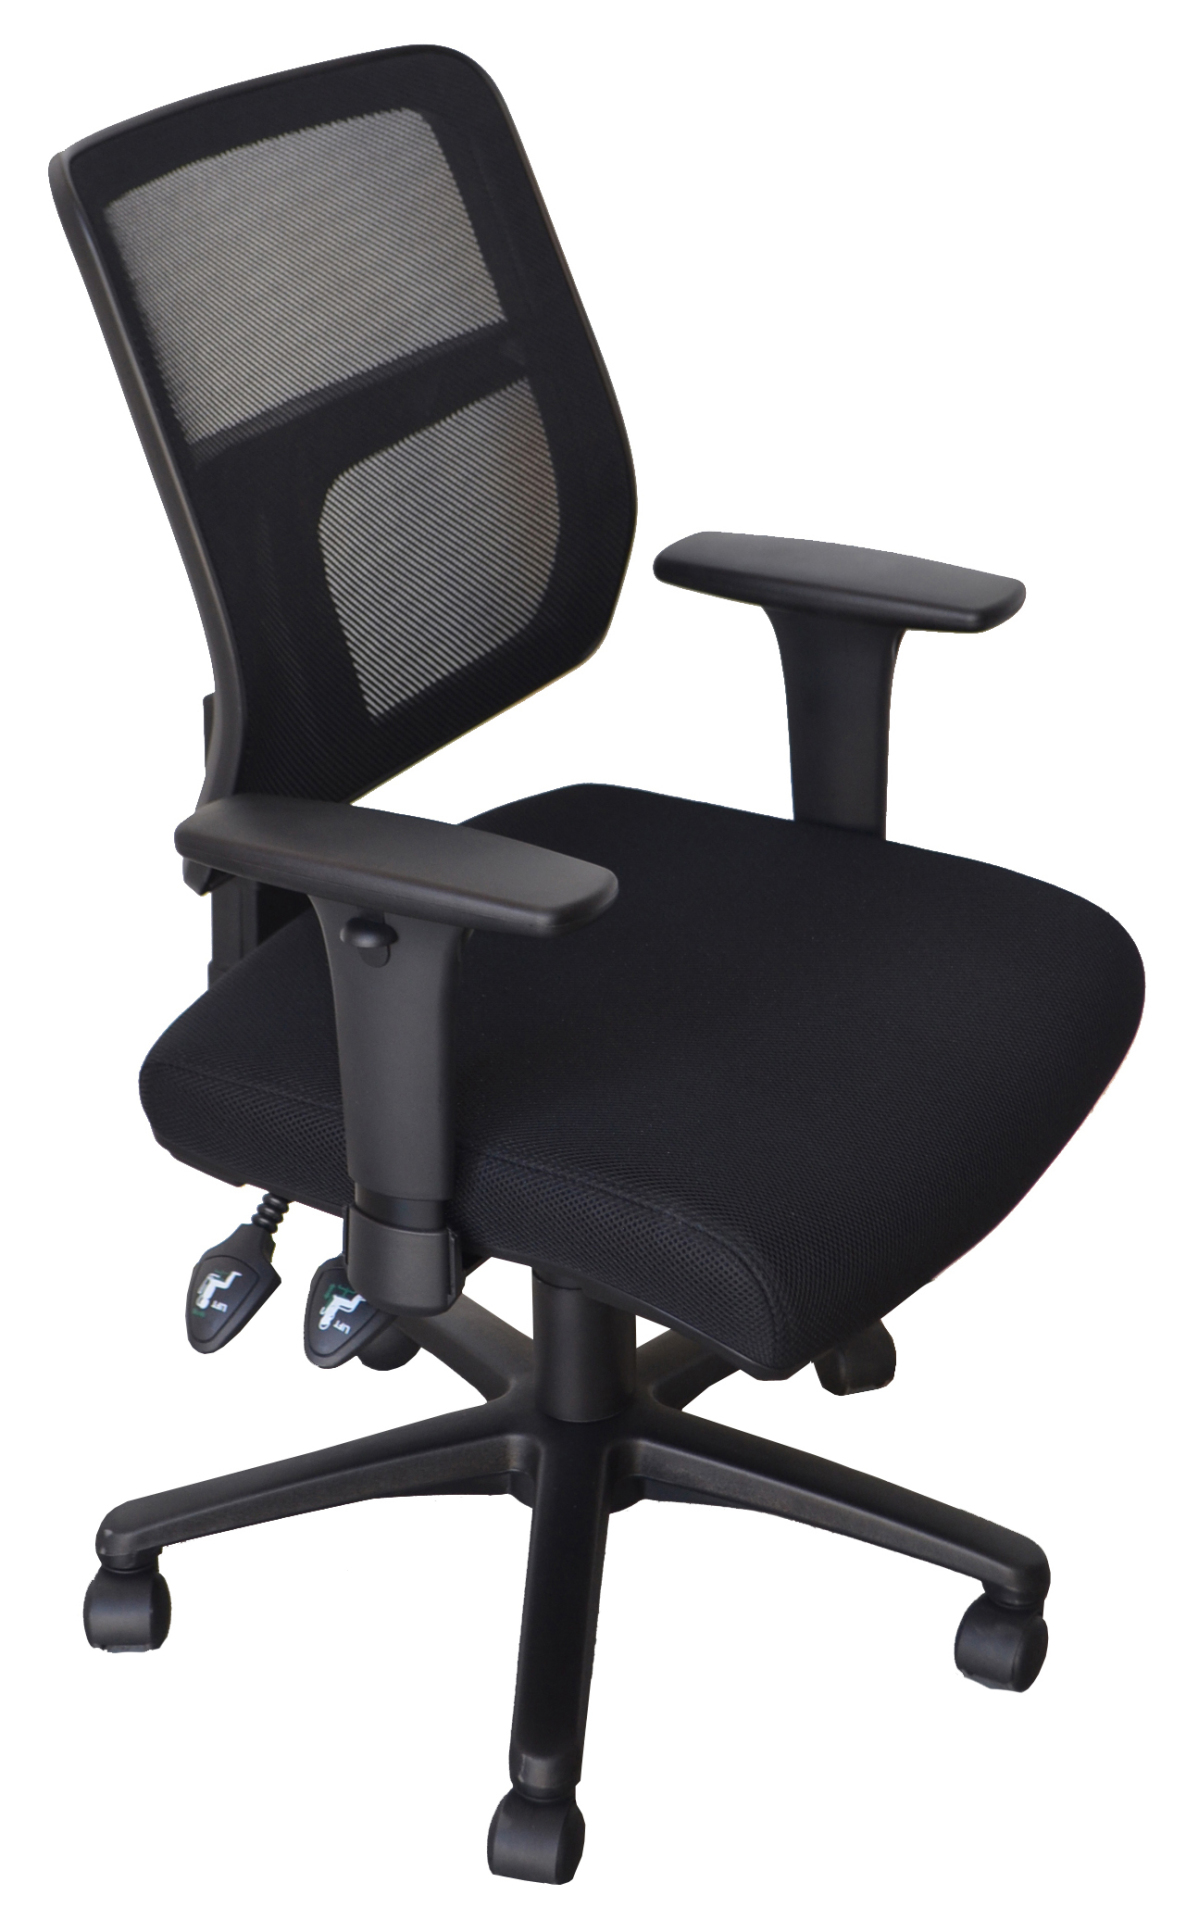 Direct Ergonomics | Sydney Office Furniture | Ergonomic Furniture | Ergonomic Seating | Executive and Task Seating | Meeting Room Chair | Breeze 150